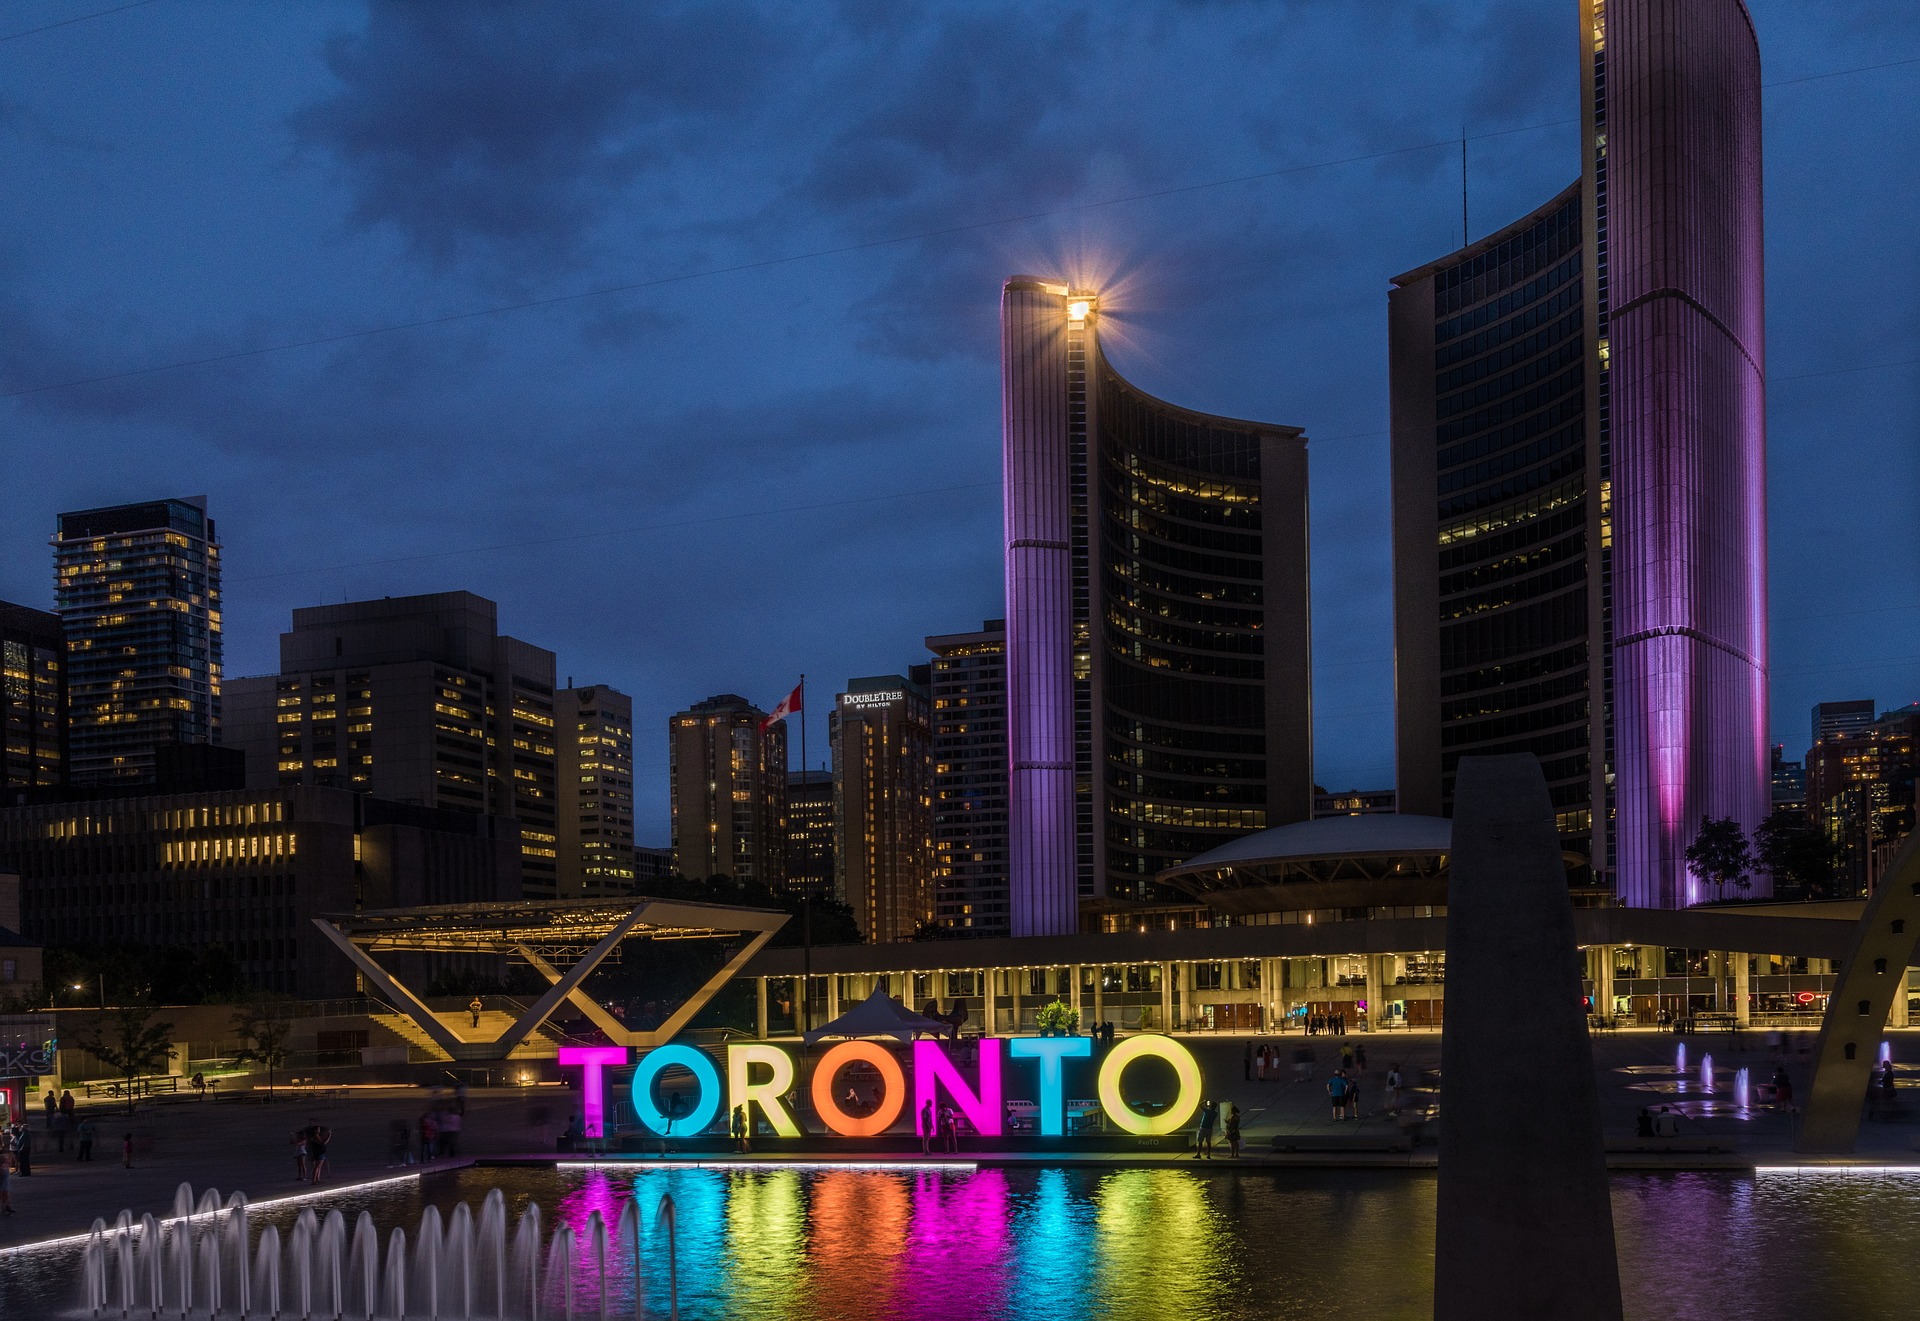 Photo of Toronto City Hall at night. The Toronto sign is lit up and Toronto real estate agent.